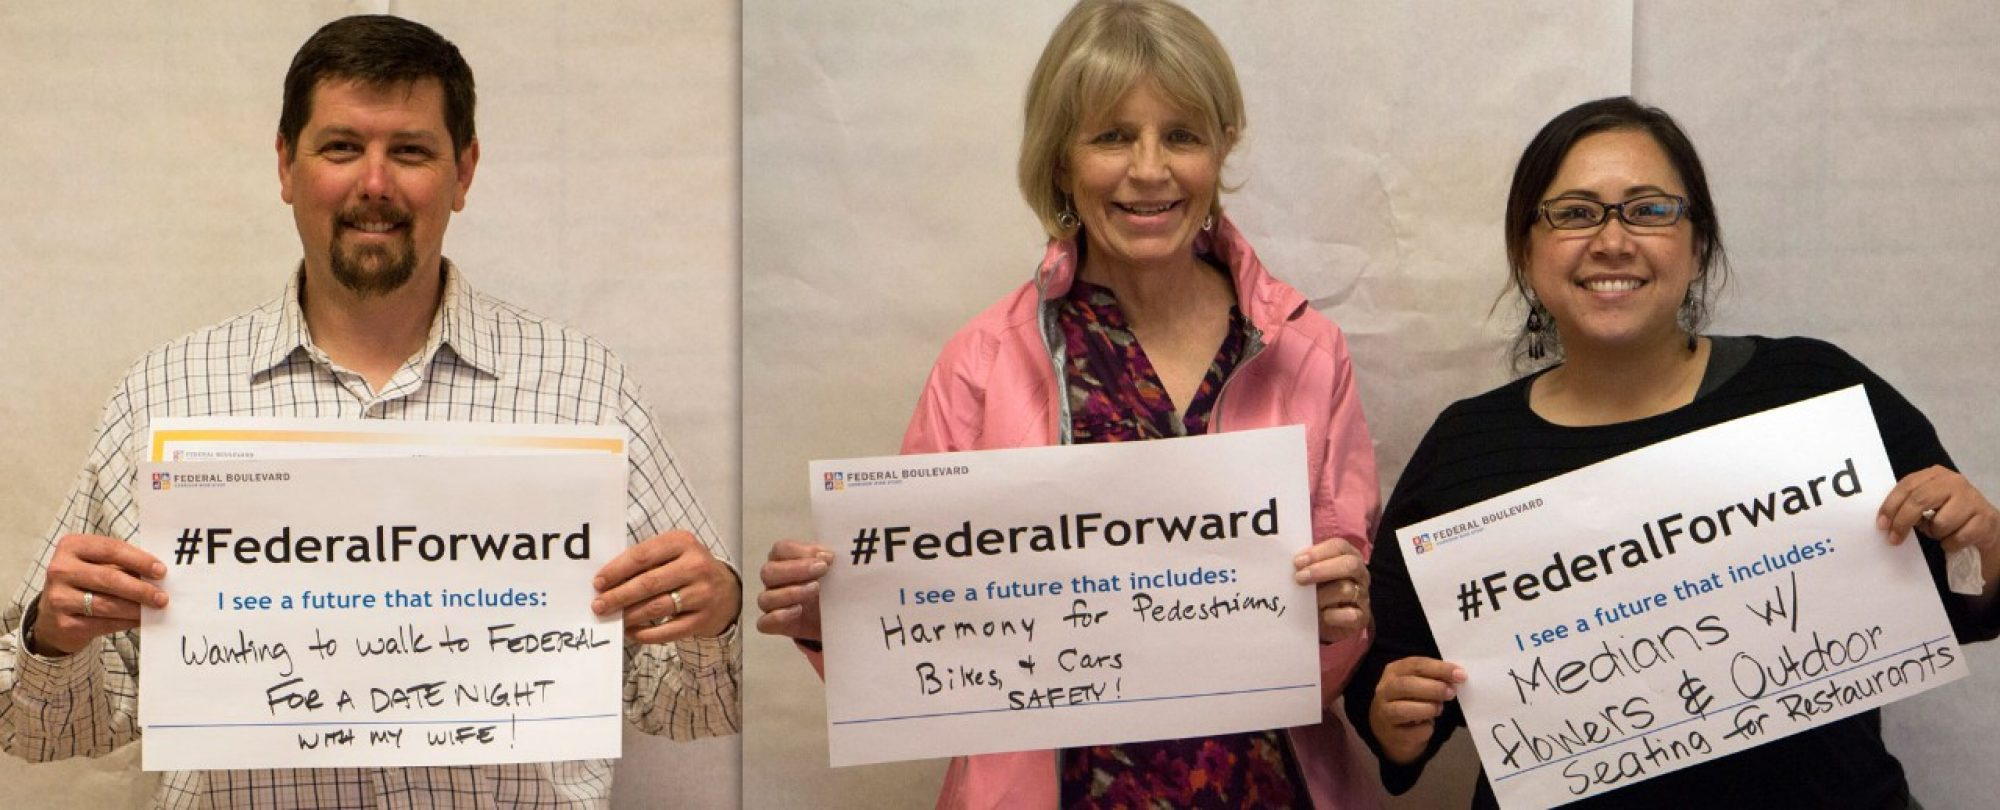 residents with #FederalForward signs: